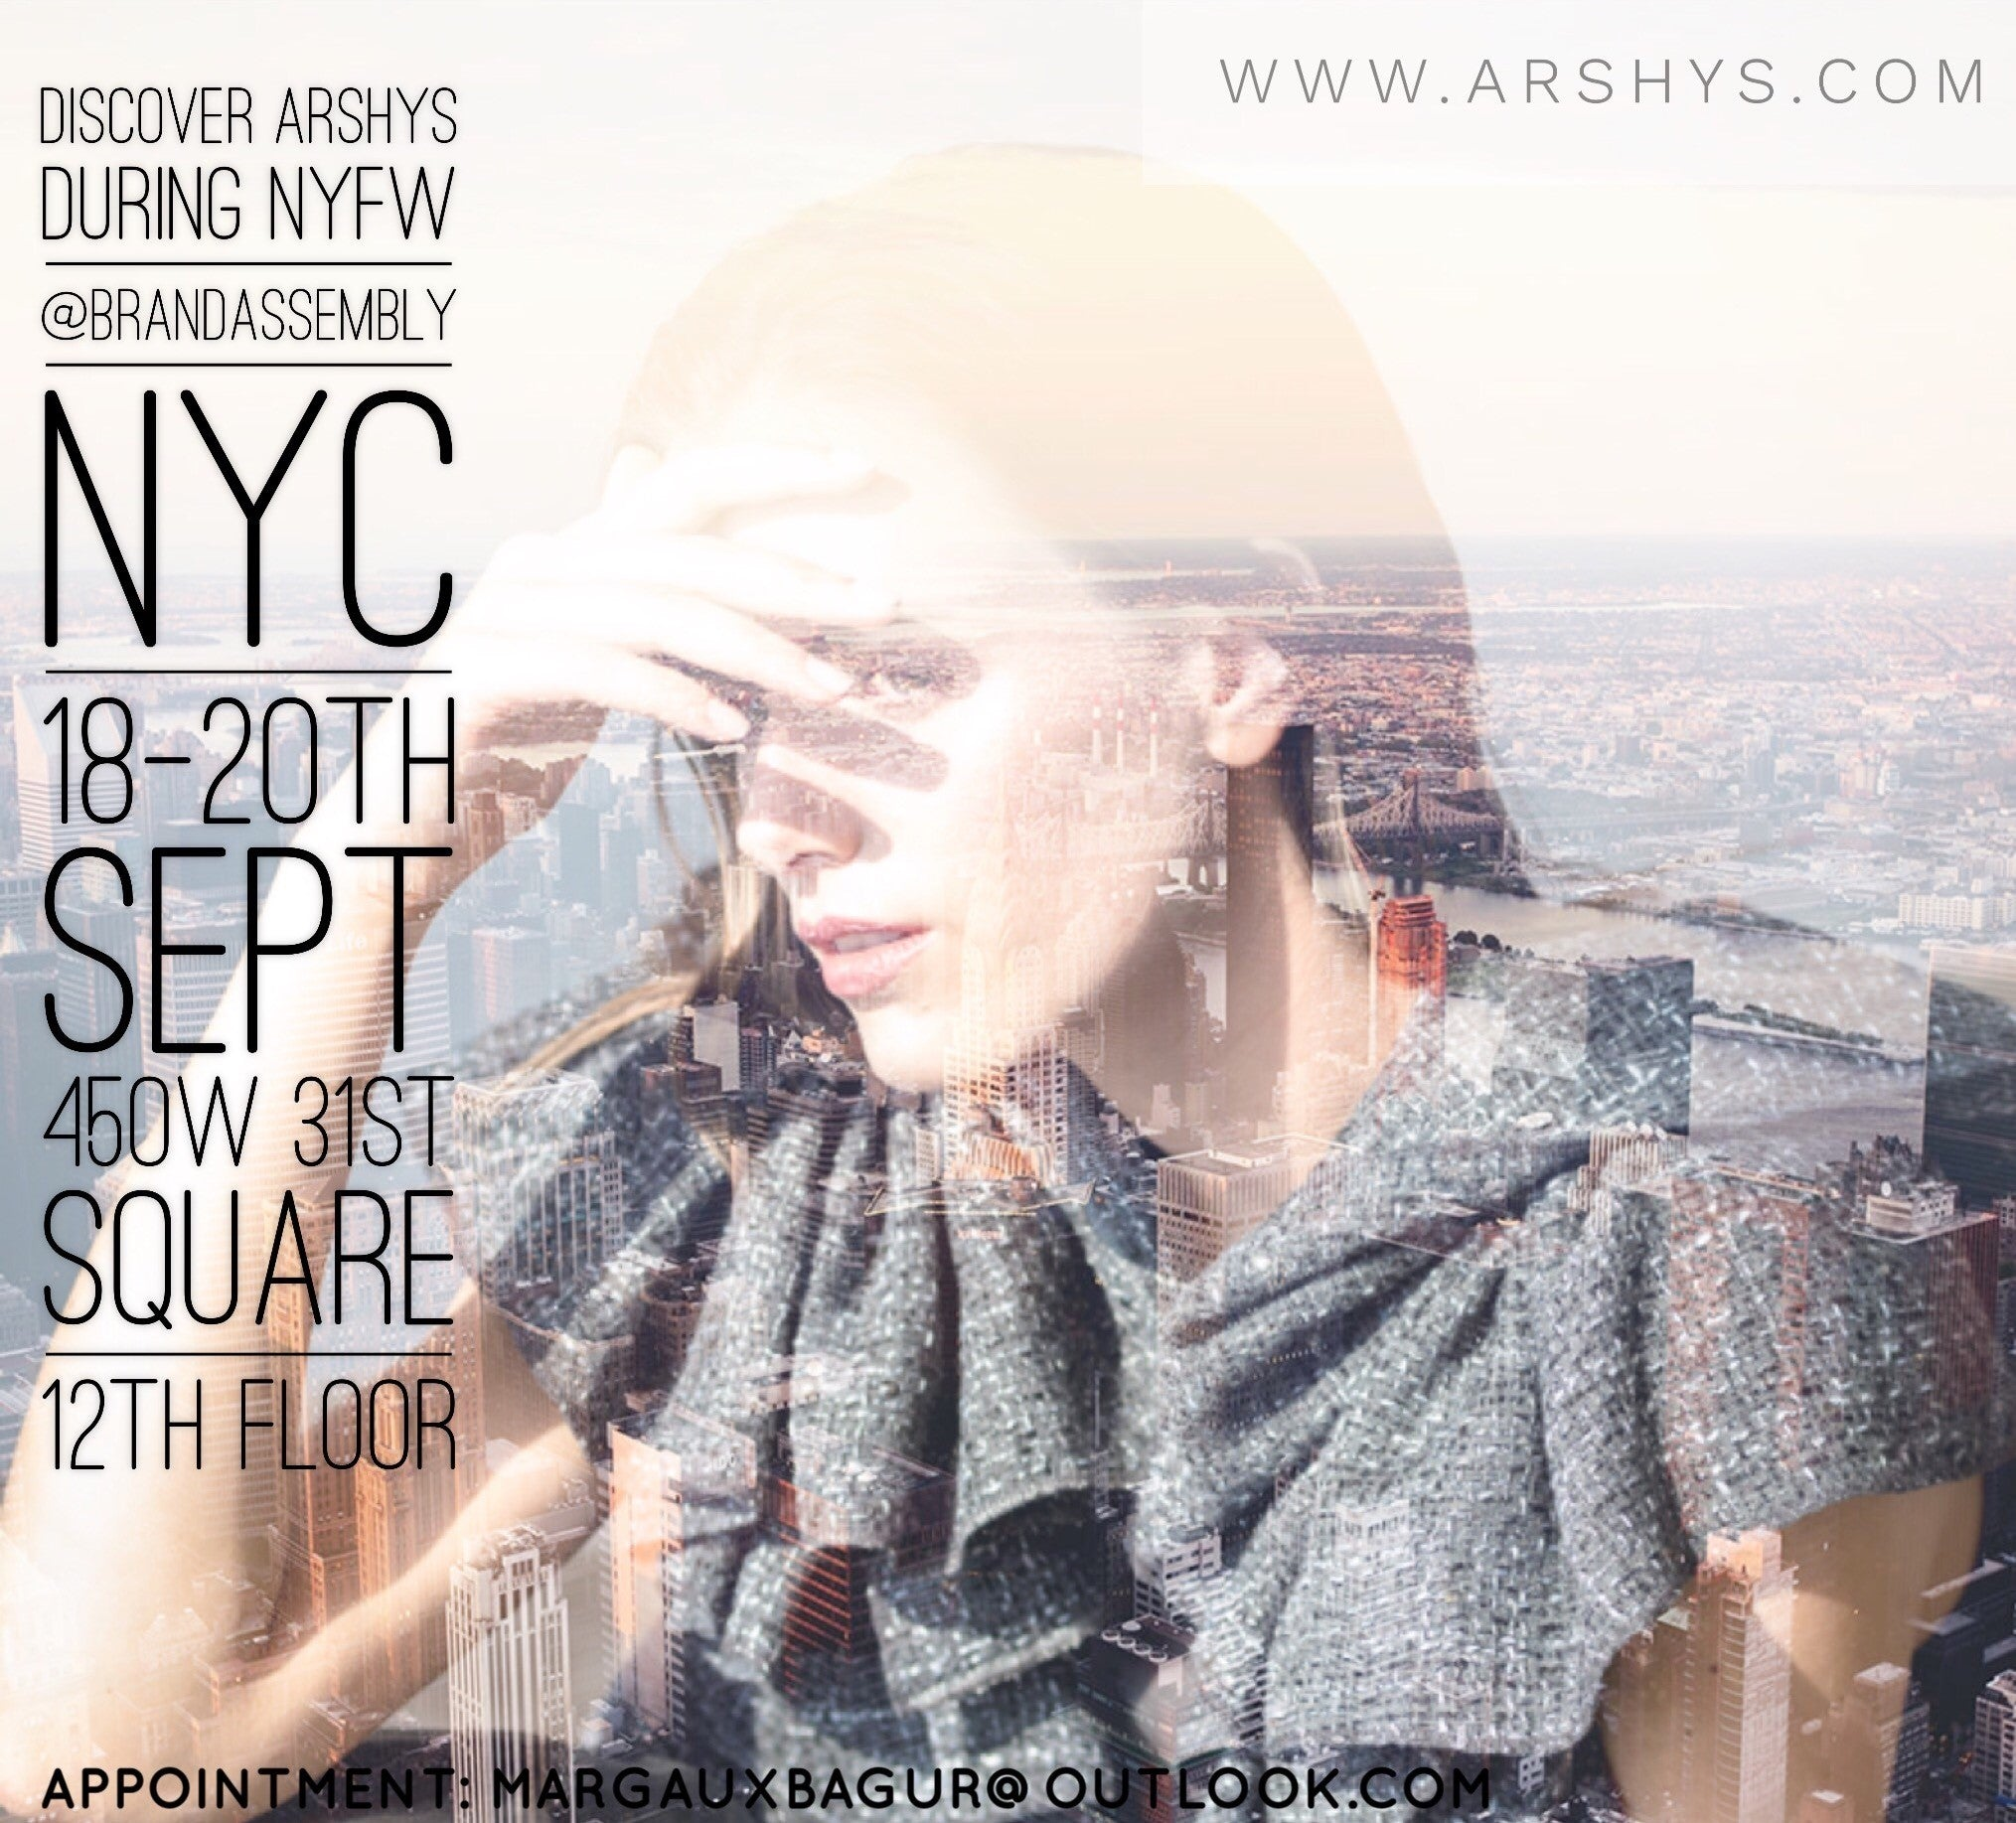 ARSHYS showcase at New York during NYFW